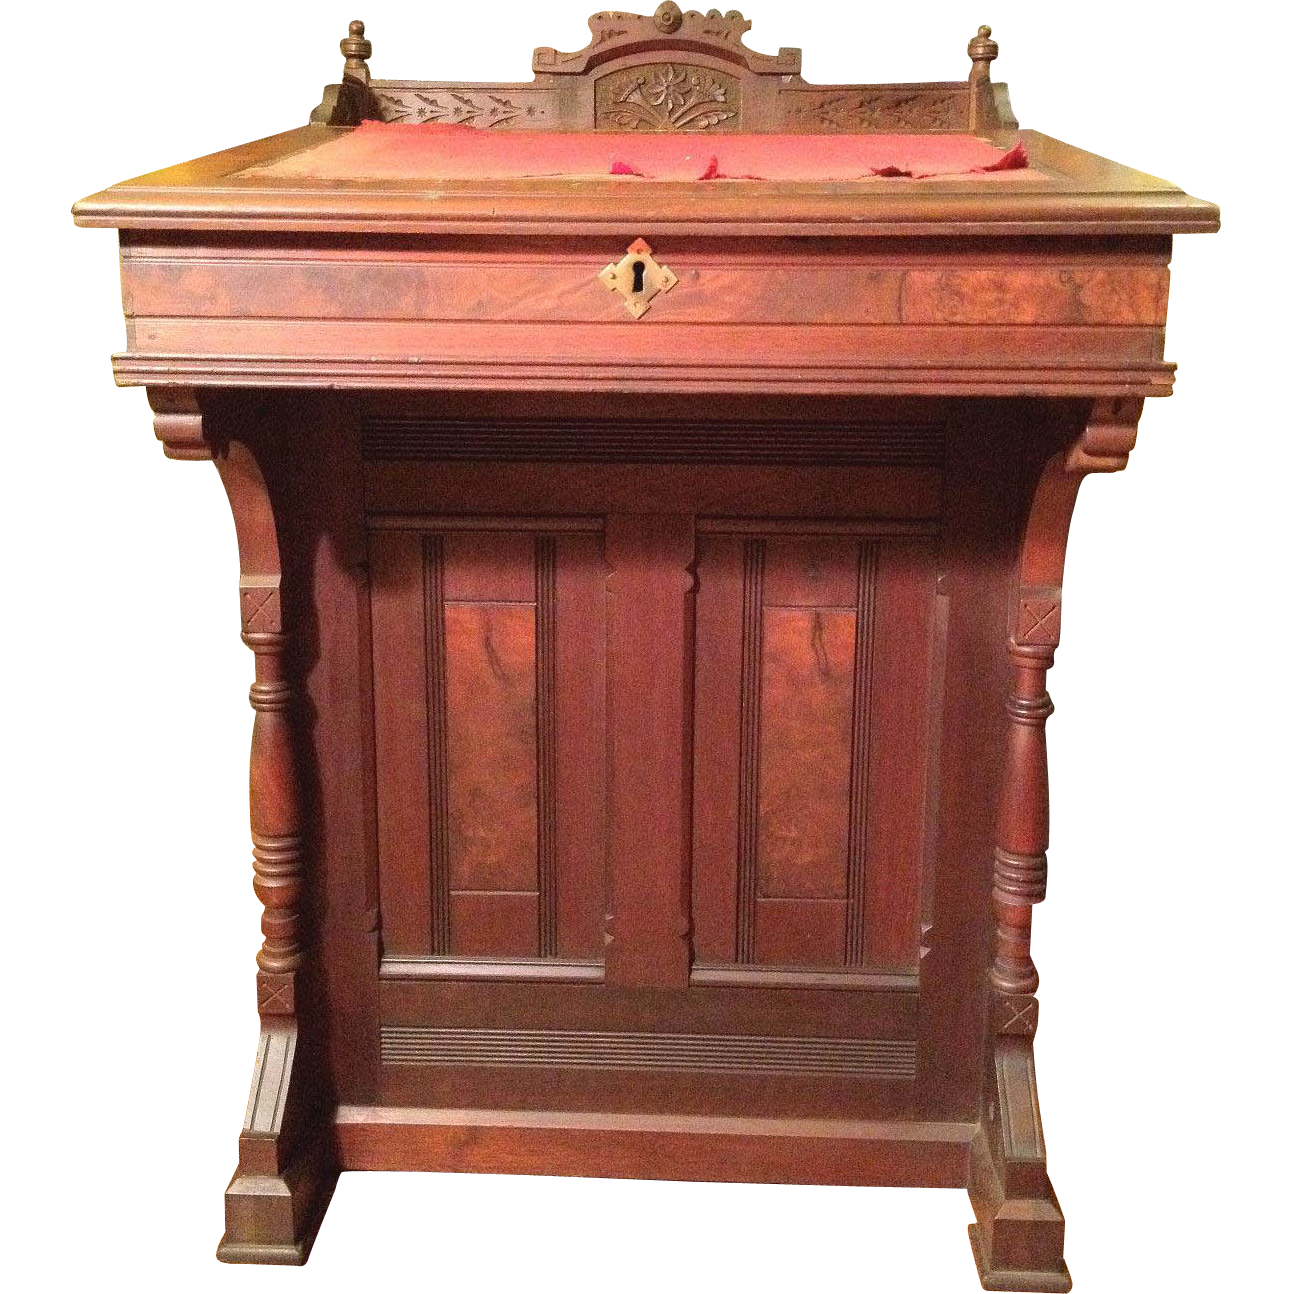 antique burled mahogany desk side drawers topper and finials great woodwork - Mahogany Desk